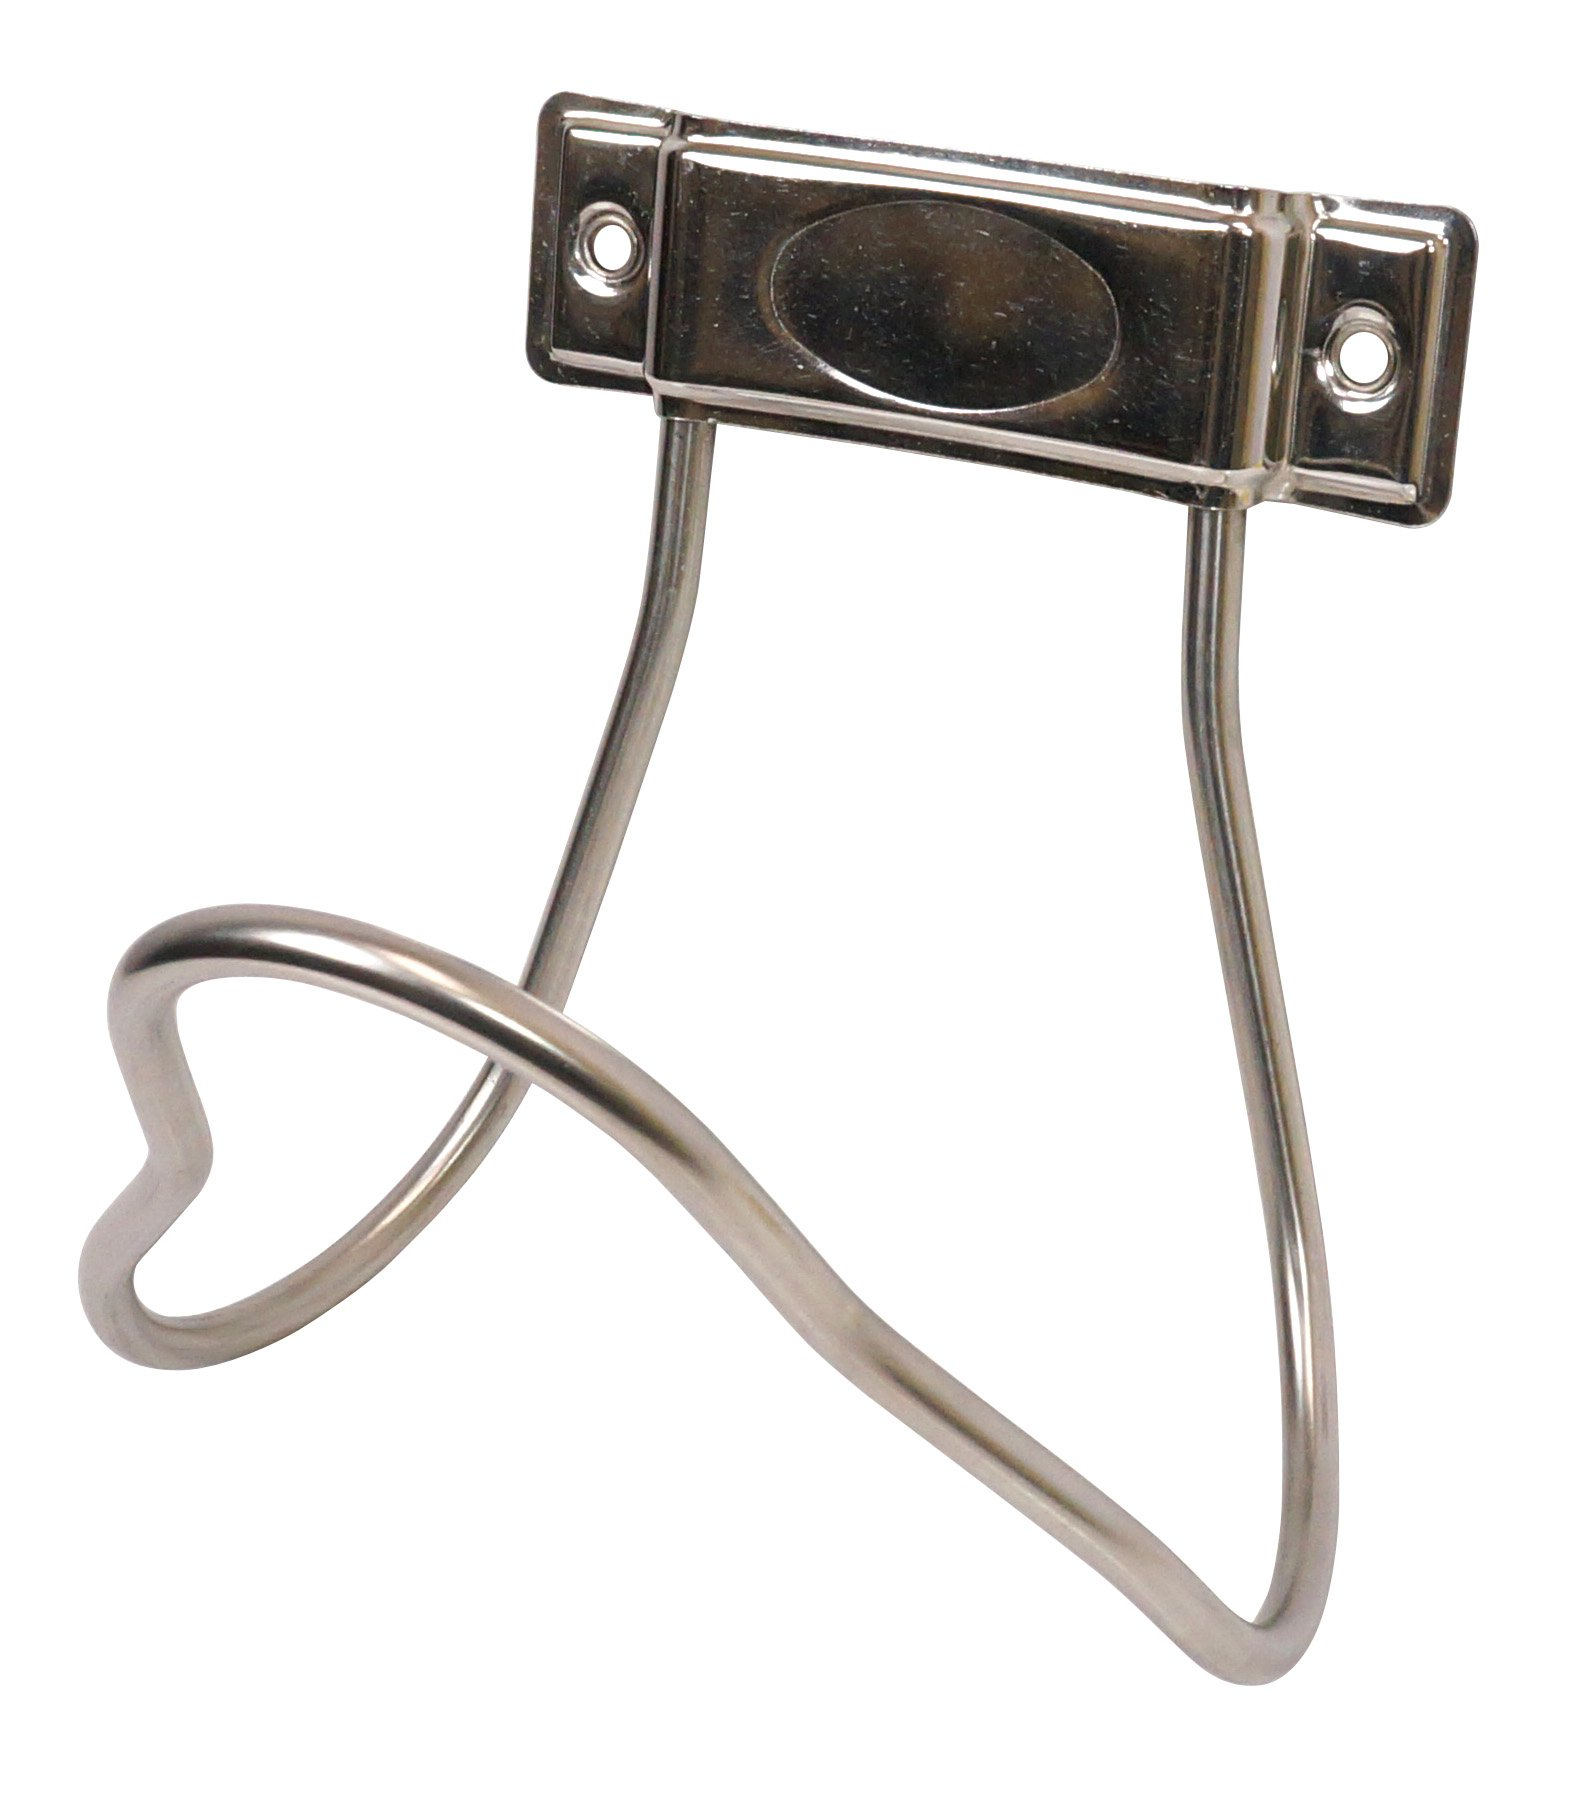 Clayton 650-008 Tough Duty Hose Hanger Holder, Medium, Silver by CLAYTON